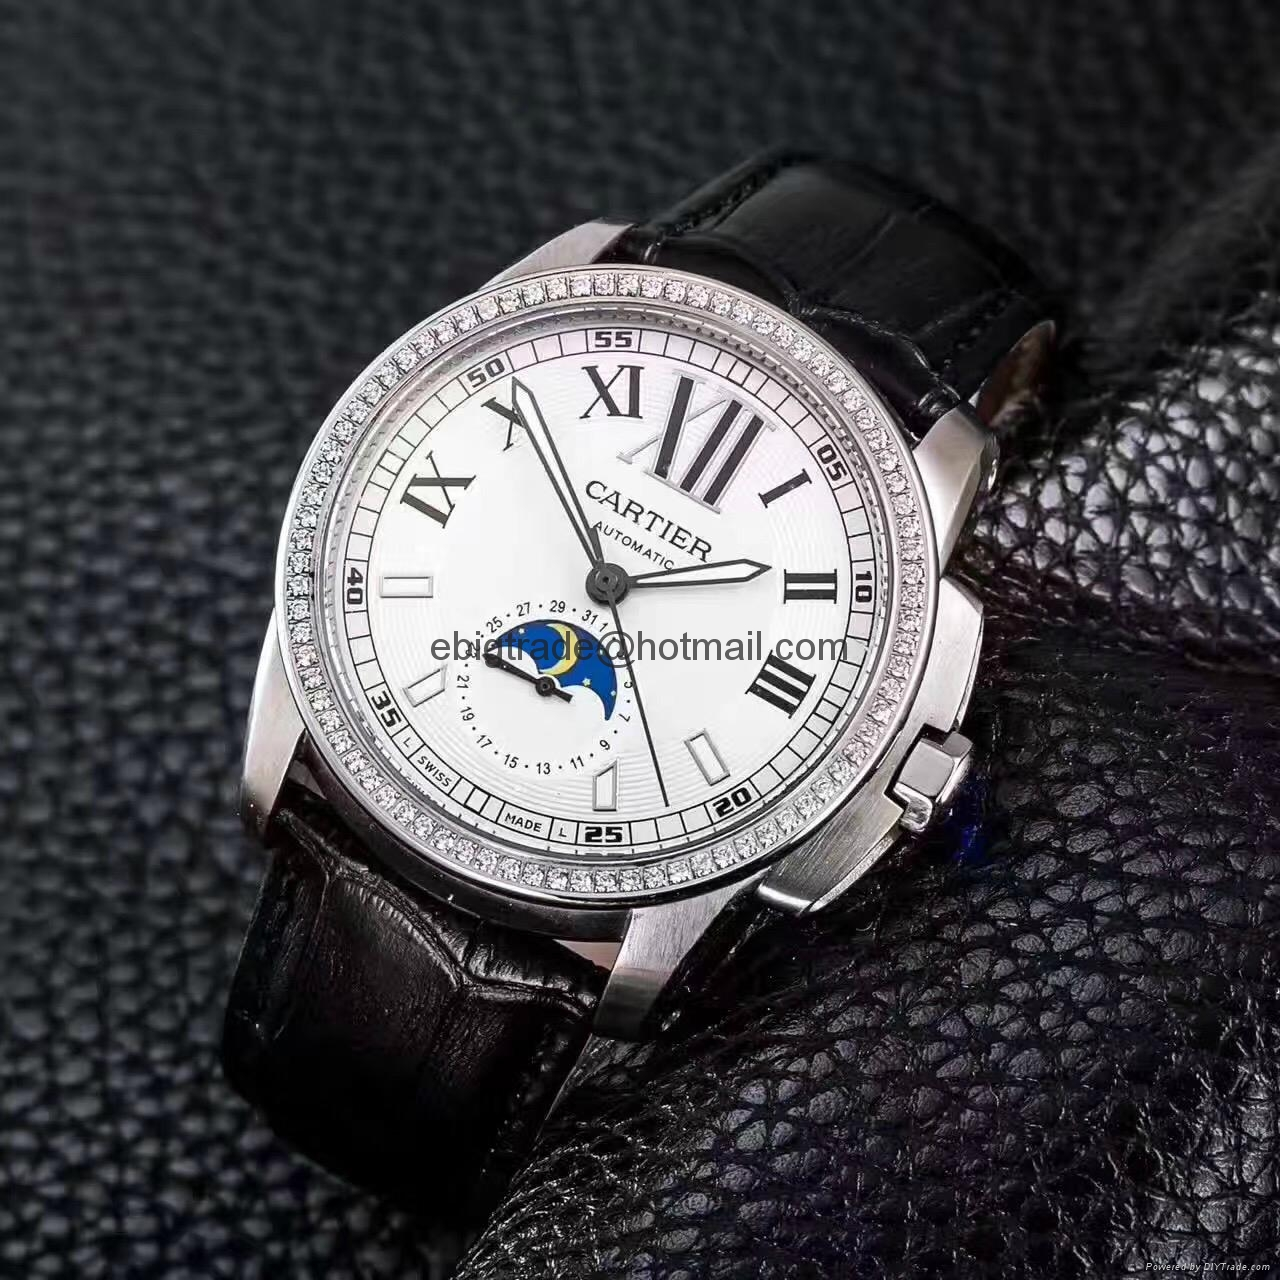 Cartier Watches outlet